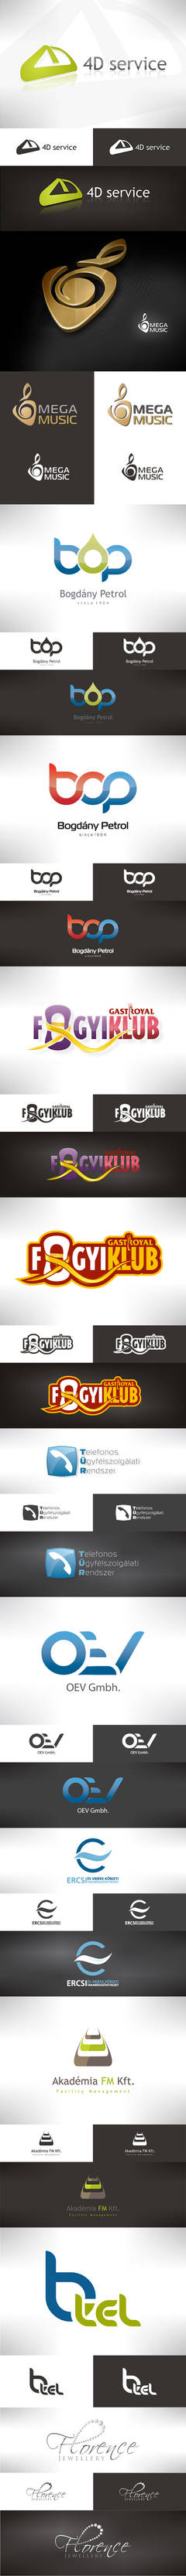 Best of my logo designs